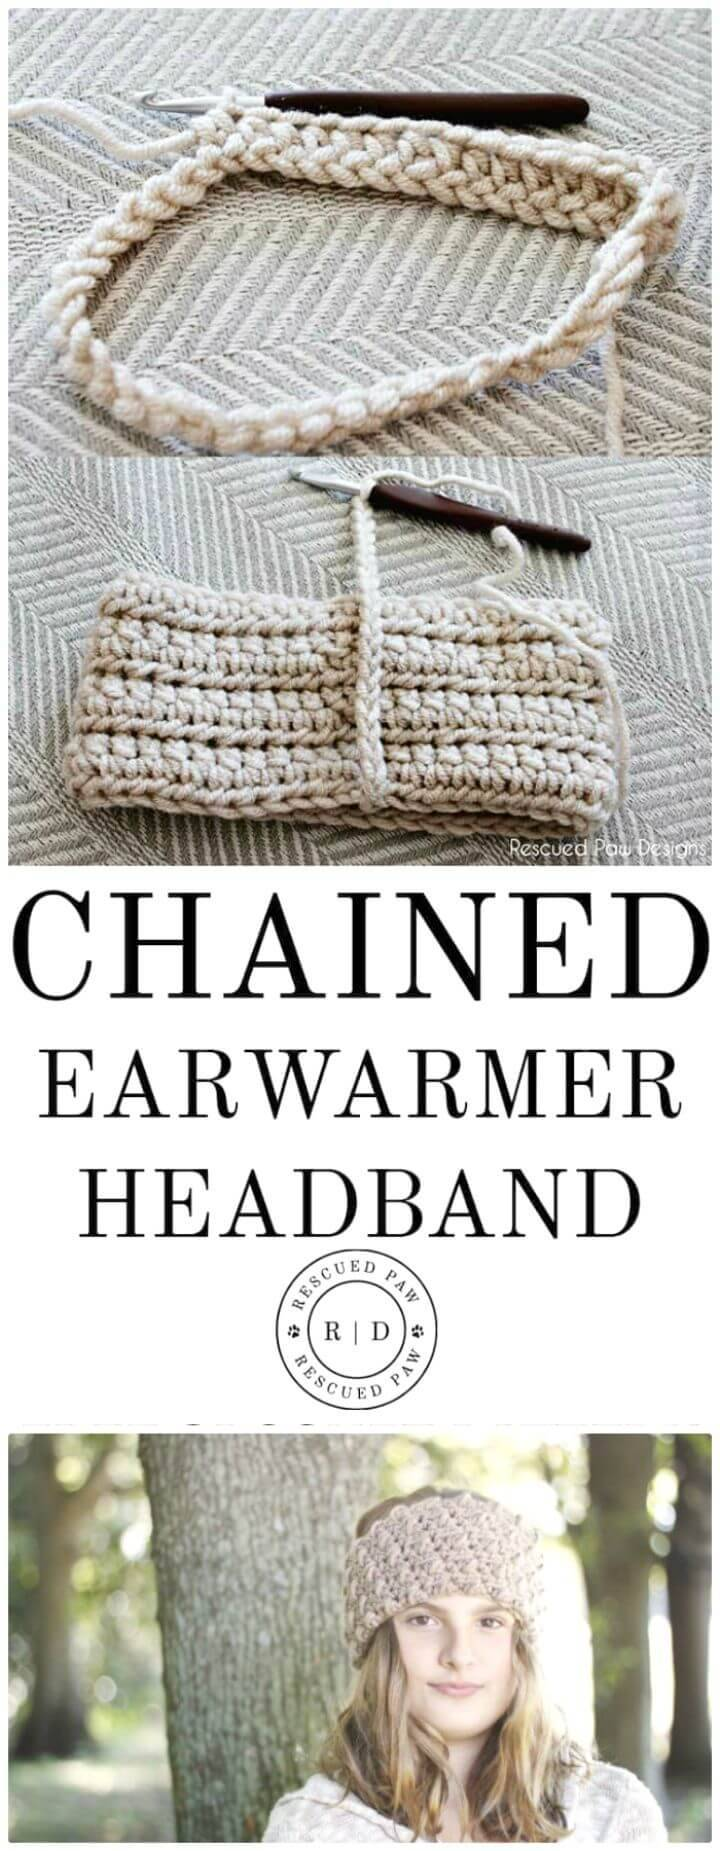 How To Crochet Chained Headband - Free Pattern